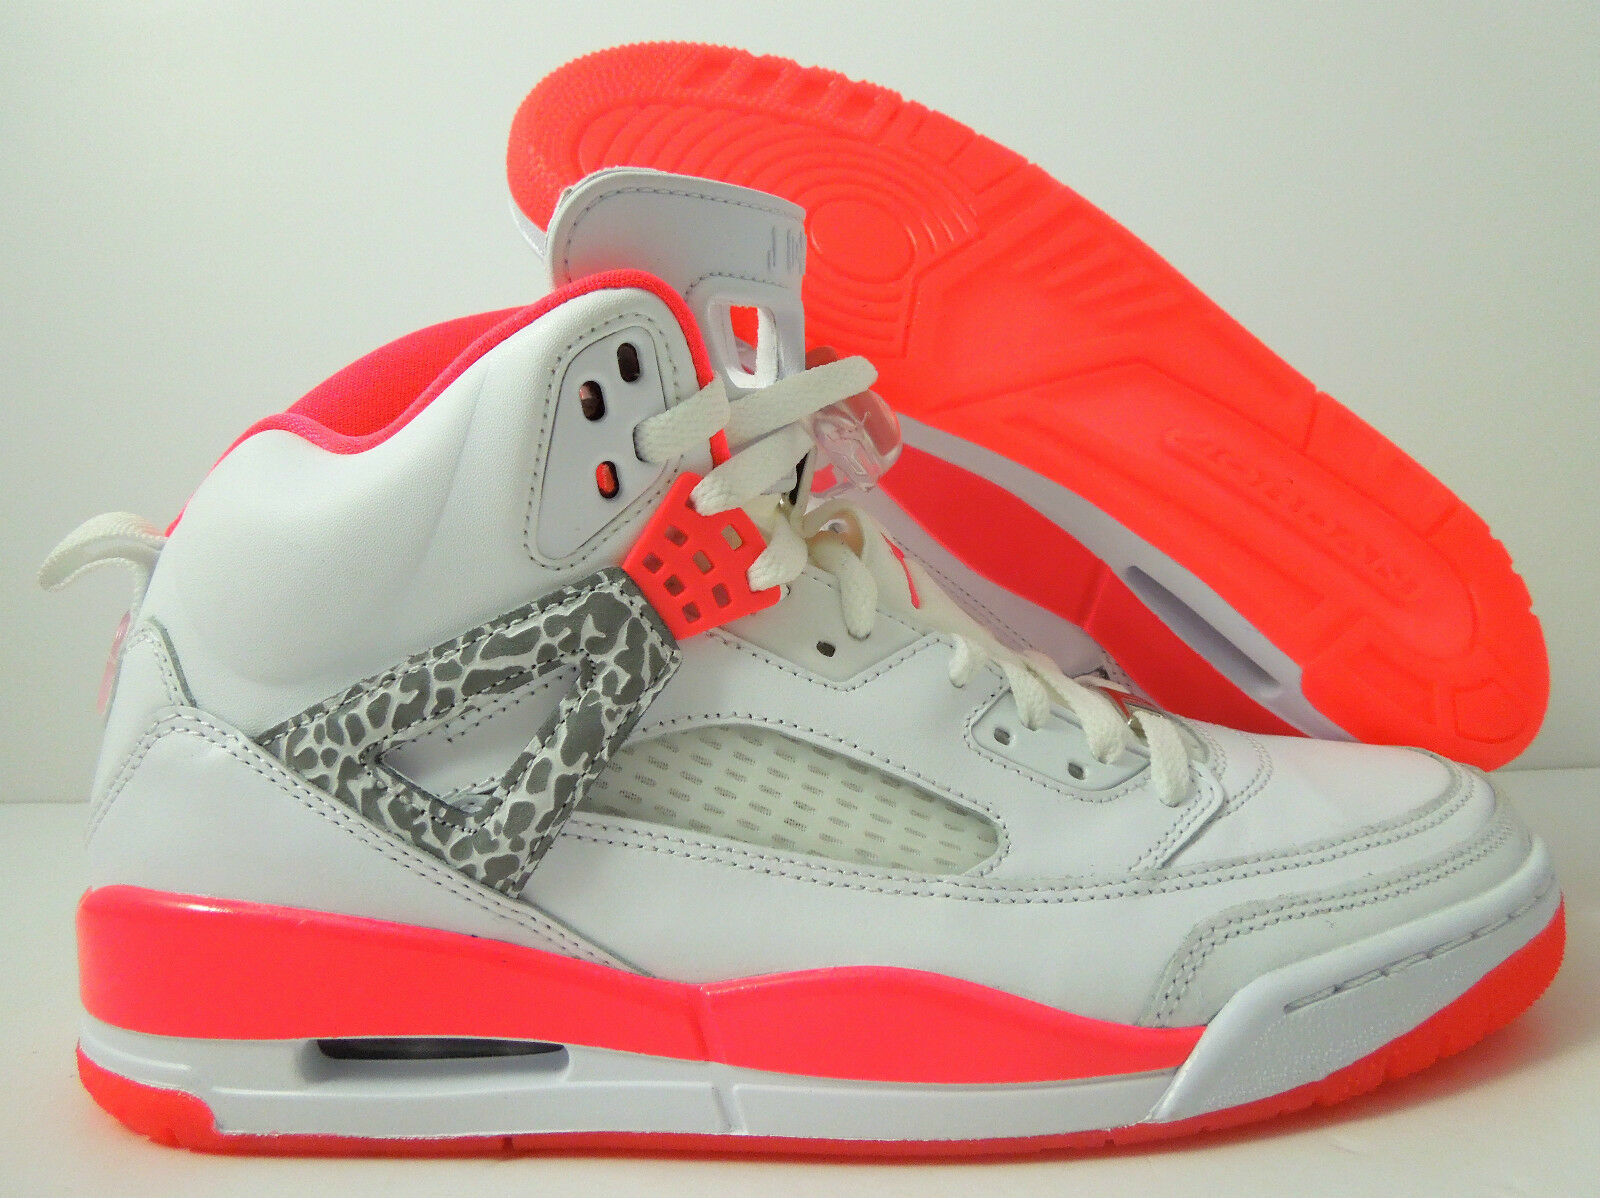 NIKE AIR JORDAN SPIZIKE iD WHITE-HOT CORAL SZ 10.5 [605236-991]